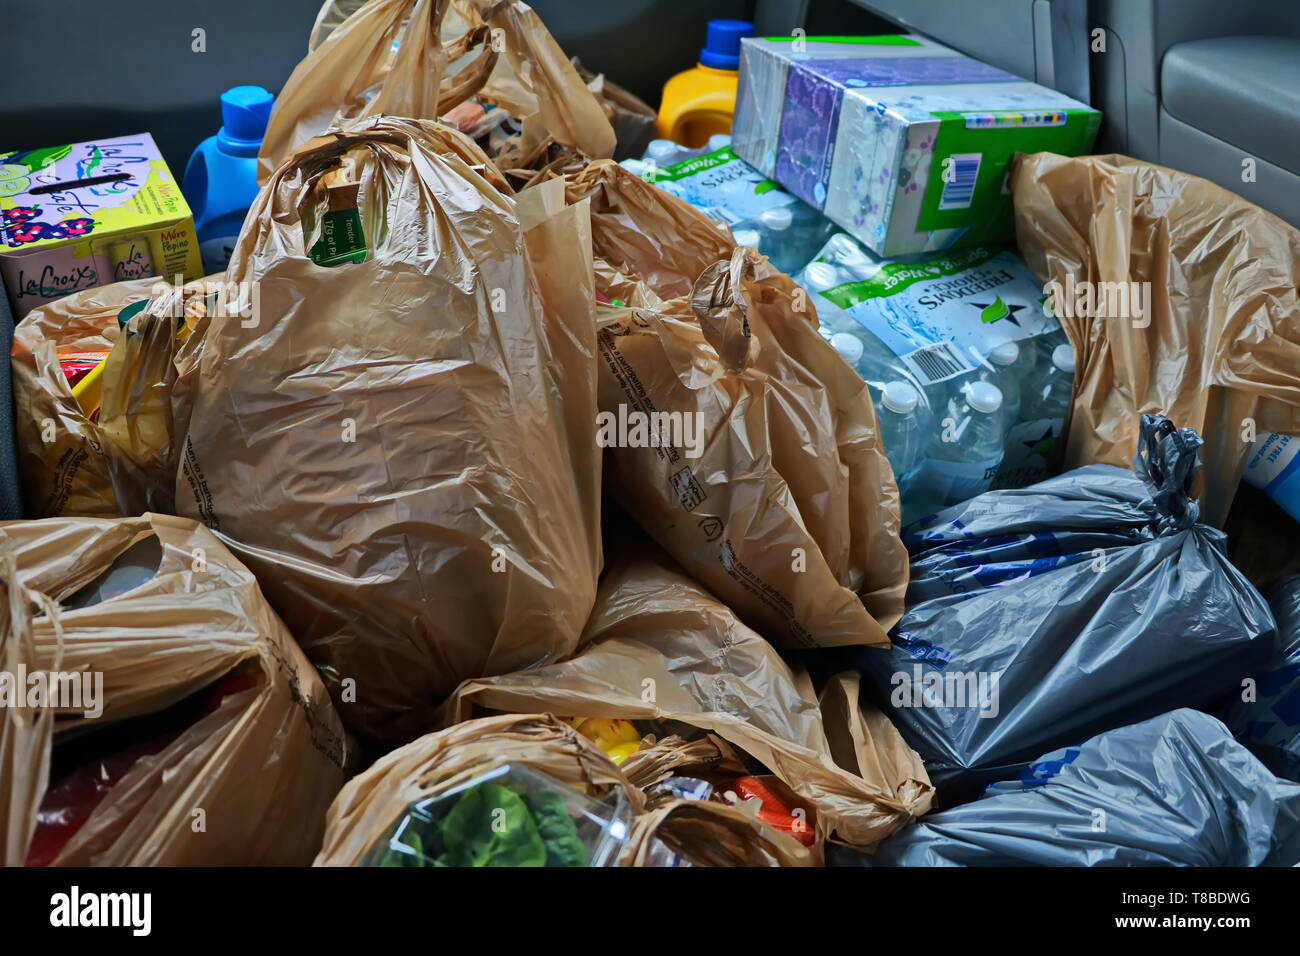 a bunch of groceries in the back of minivan - Stock Image